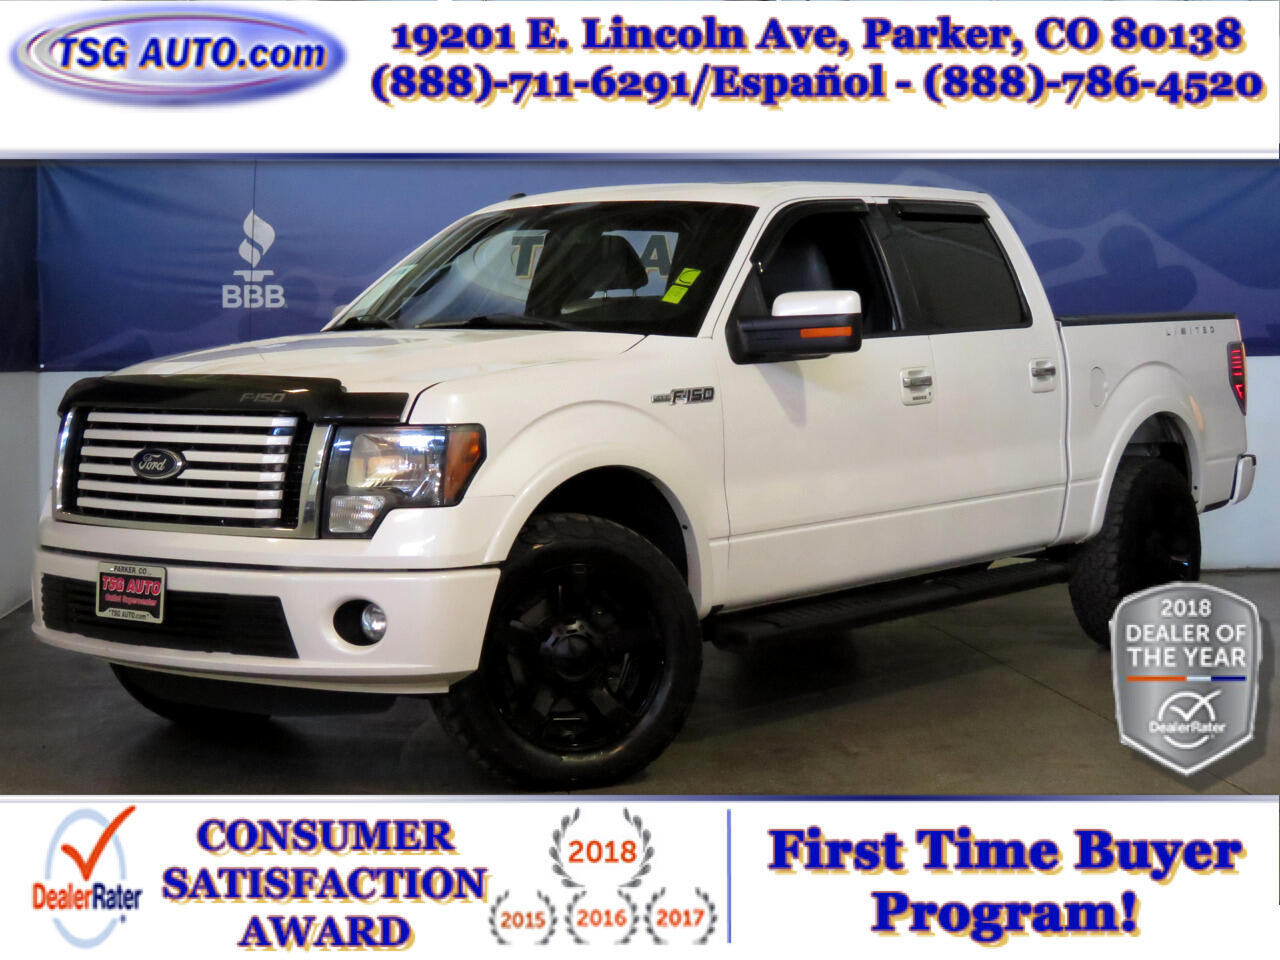 2011 Ford F-150 Larriat Limited SuperCrew 4WD